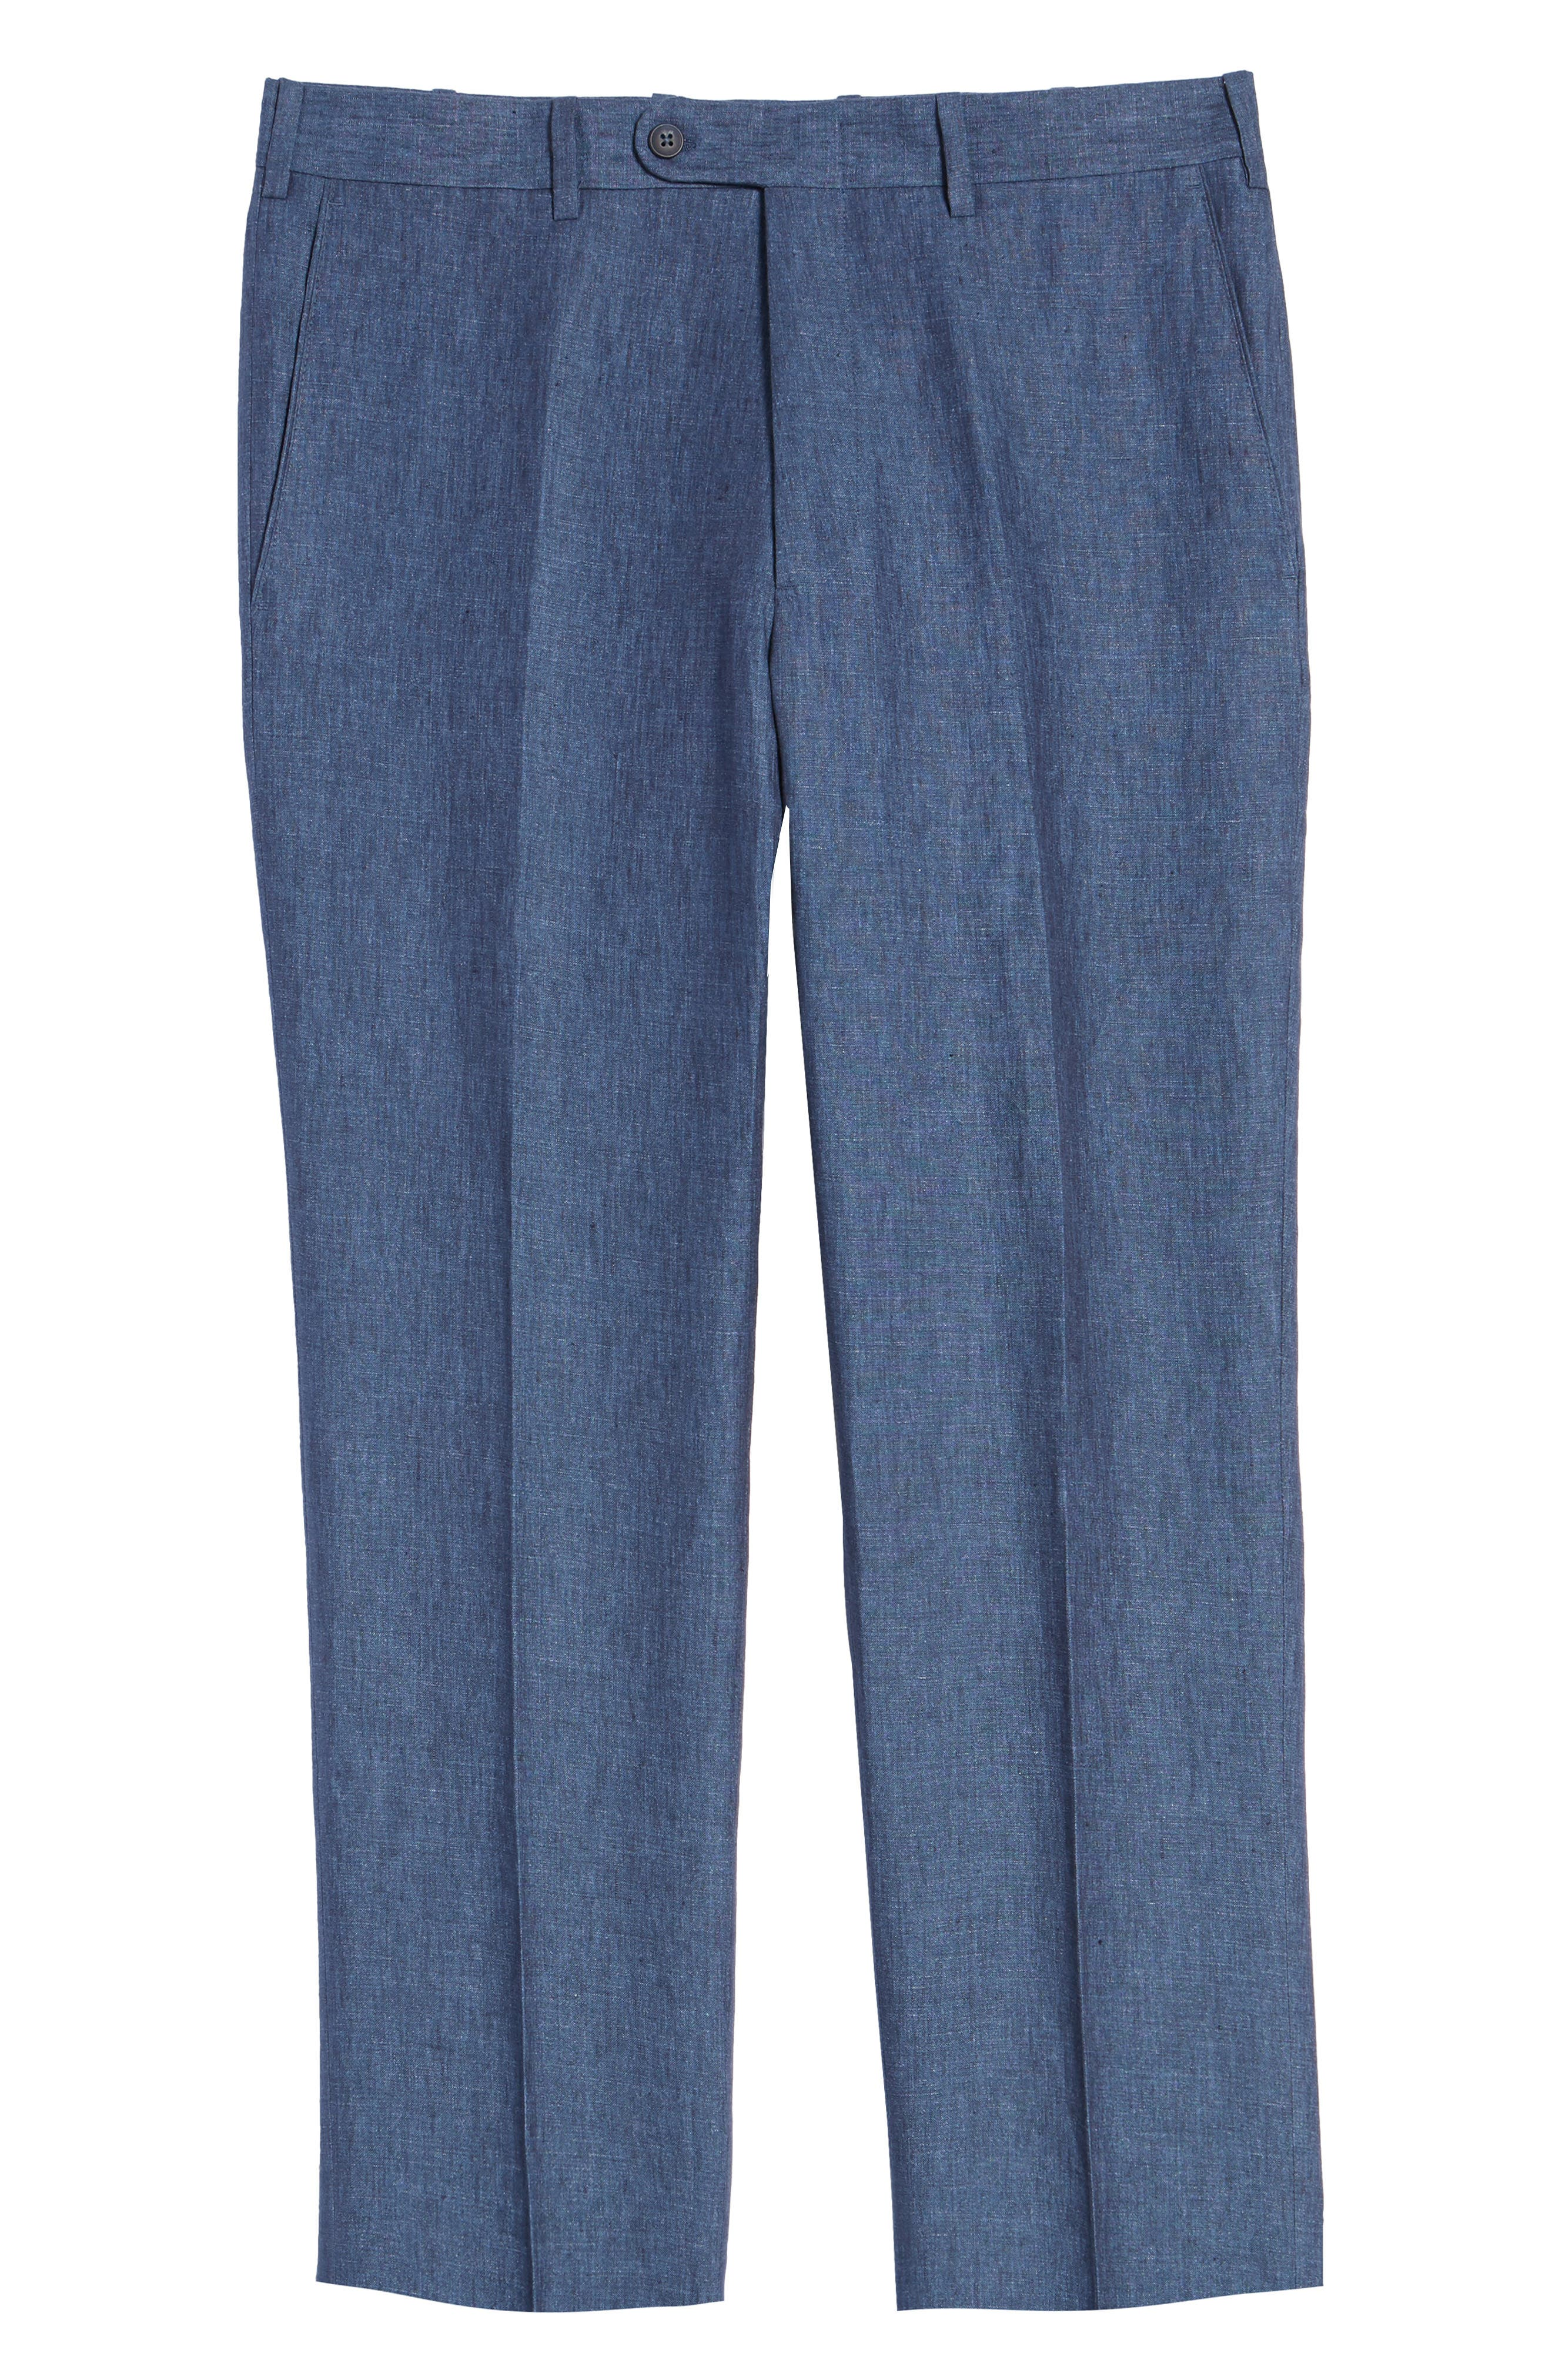 JOHN W. NORDSTROM<SUP>®</SUP>, Torino Flat Front Solid Linen Trousers, Alternate thumbnail 6, color, 420